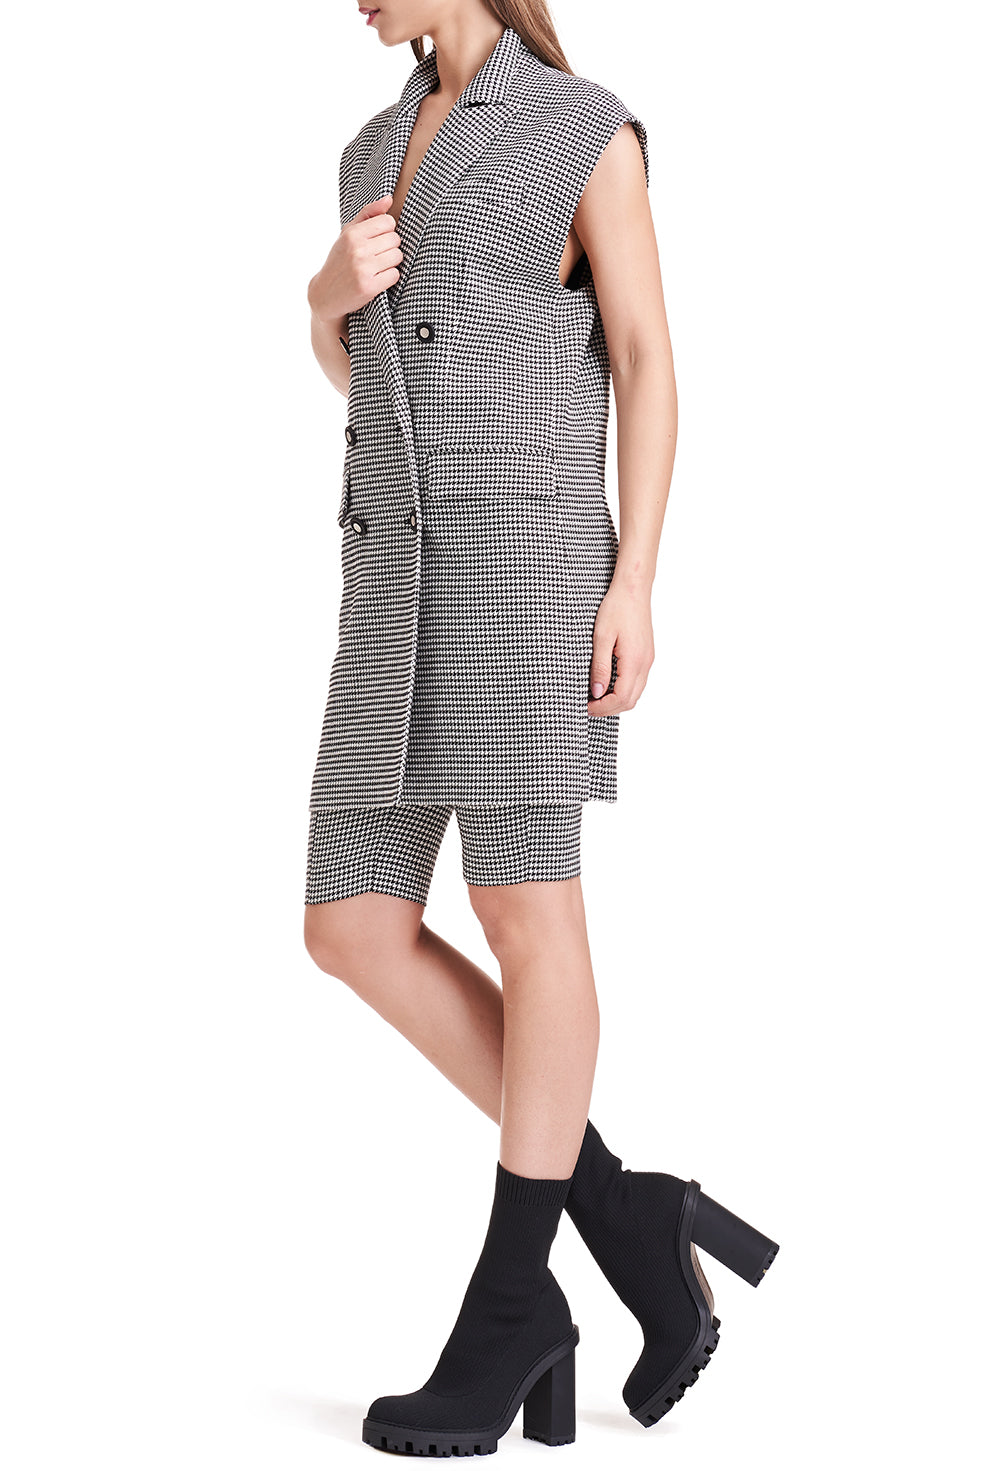 Noire Oversized Checked Vest